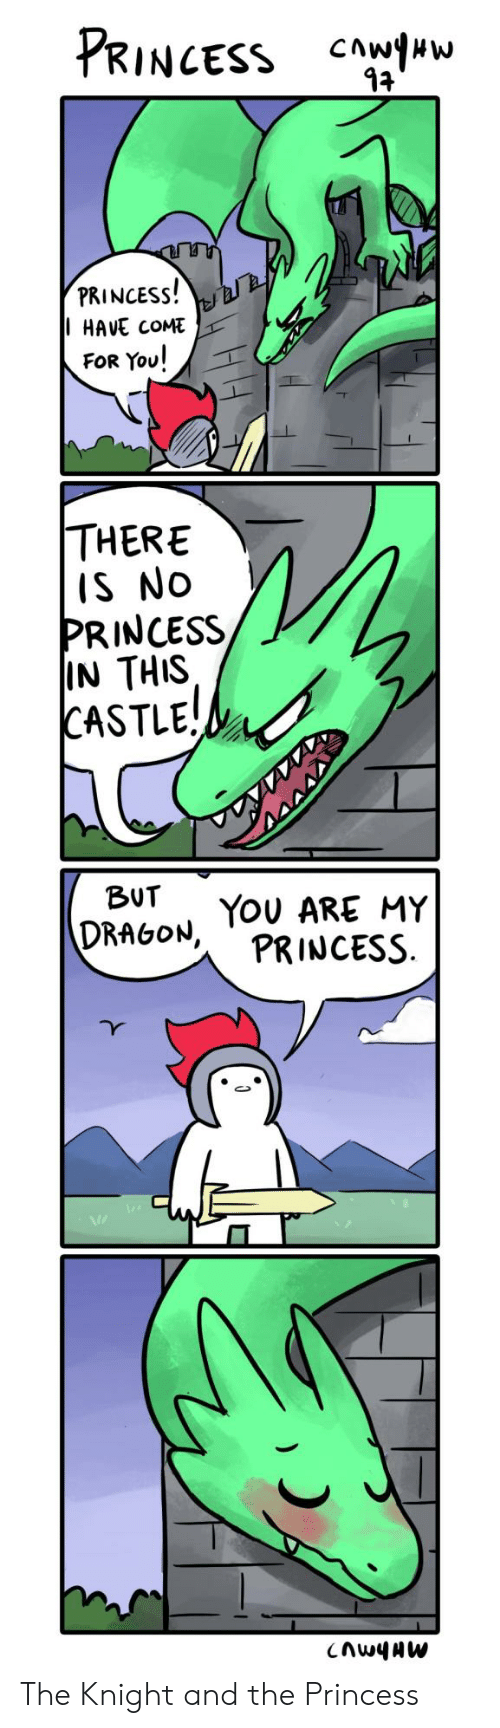 Princess, Castle, and Dragon: PRINCESS  PRINCESS!  HAVE COME  FOR You!  THERE  IS NO  PRINCESS  IN THIS  CASTLE!  BUT  DRAGON, TOU ARE MY  PRINCESS  CnwyAW The Knight and the Princess